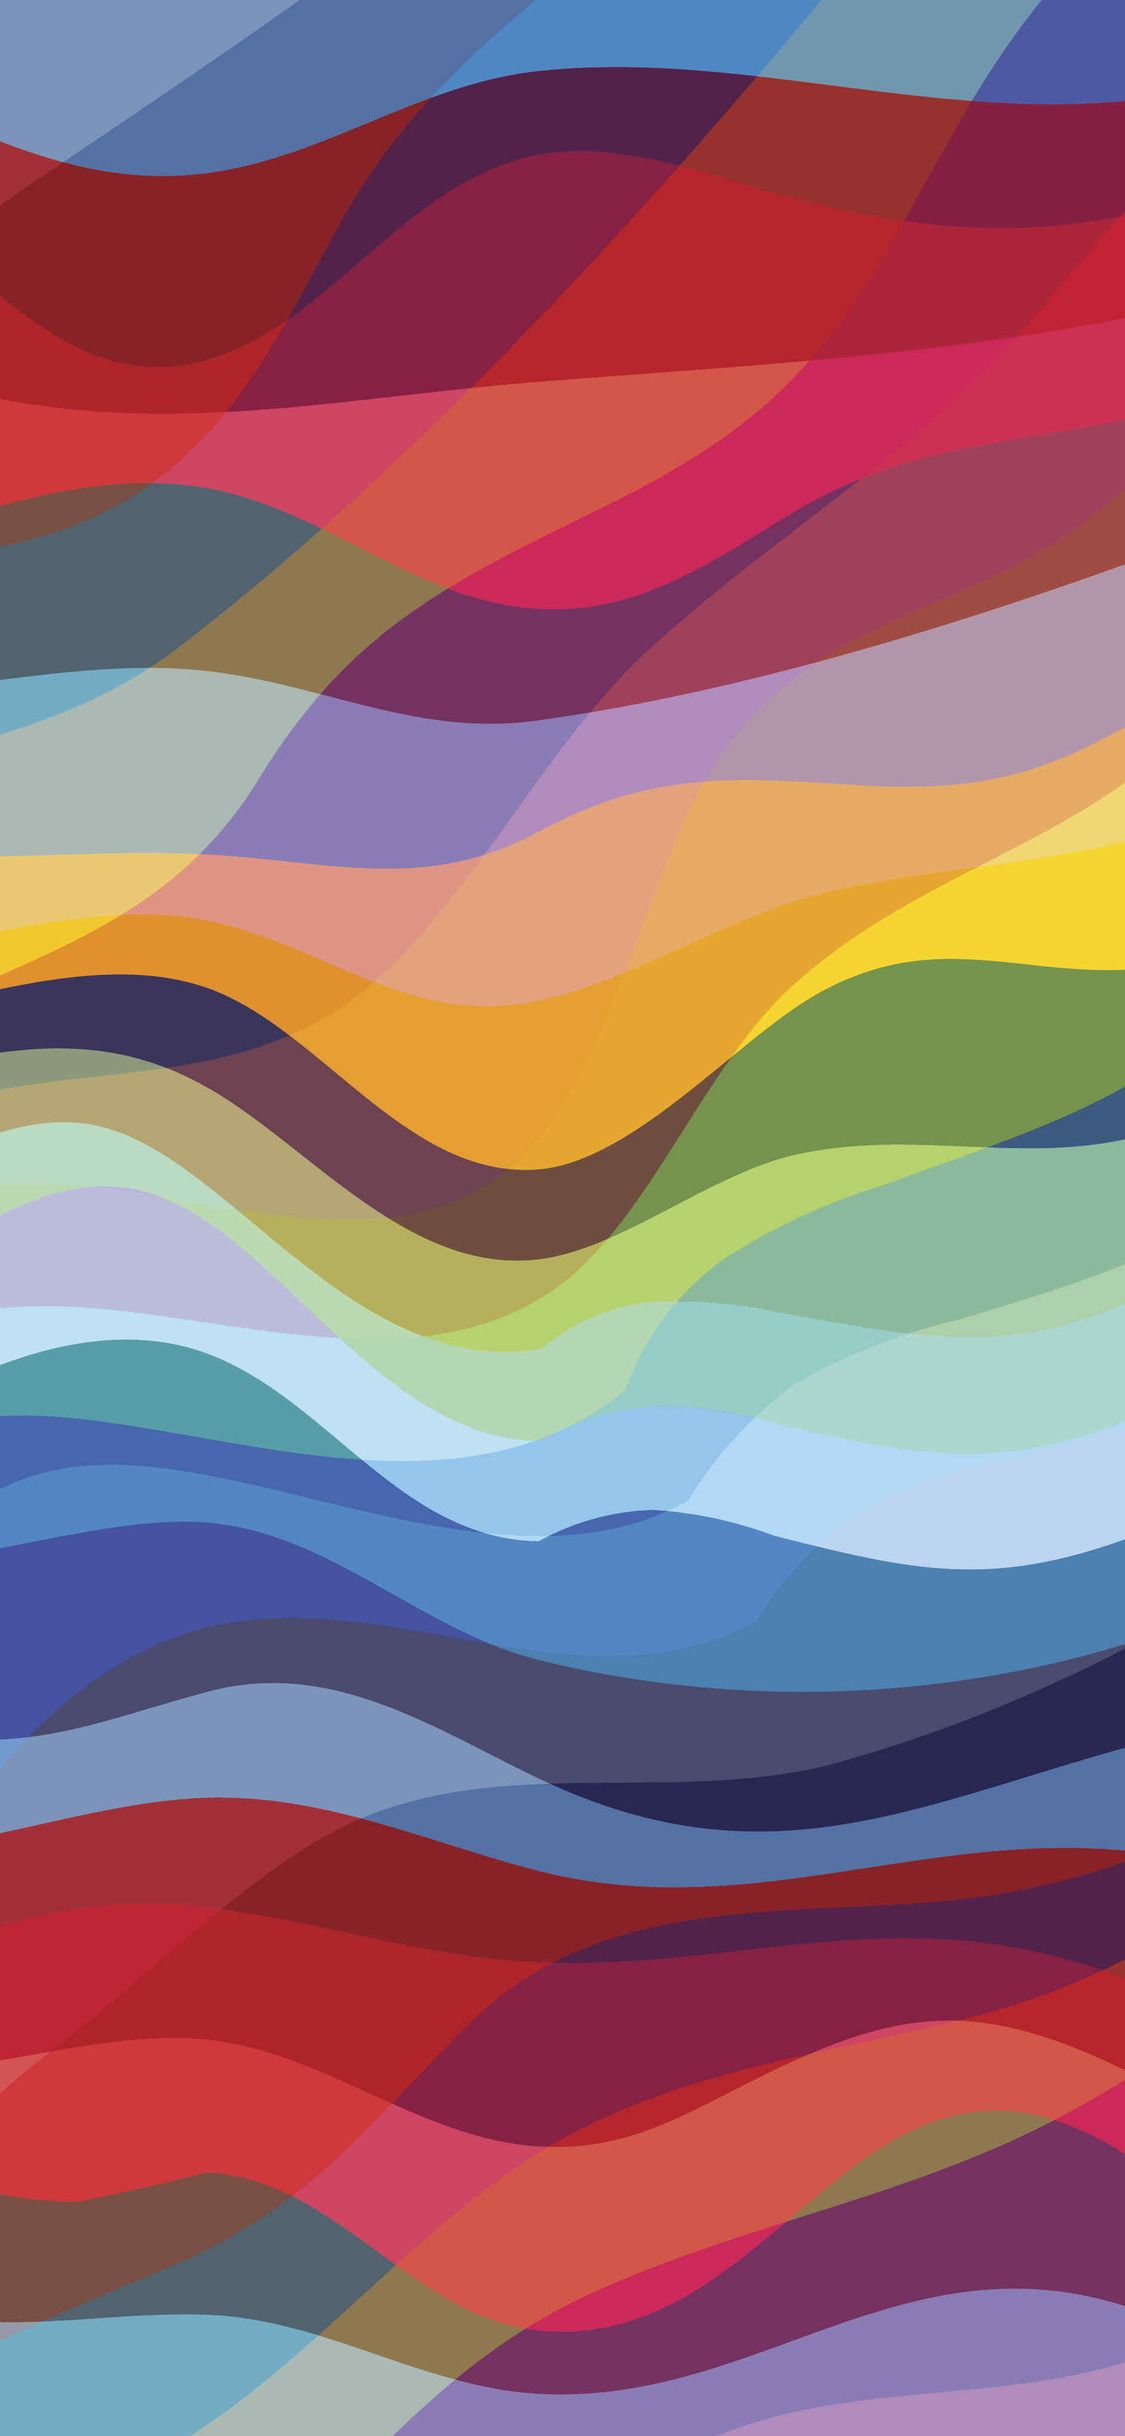 Waves Colorful iPhone X 4K Wallpaper